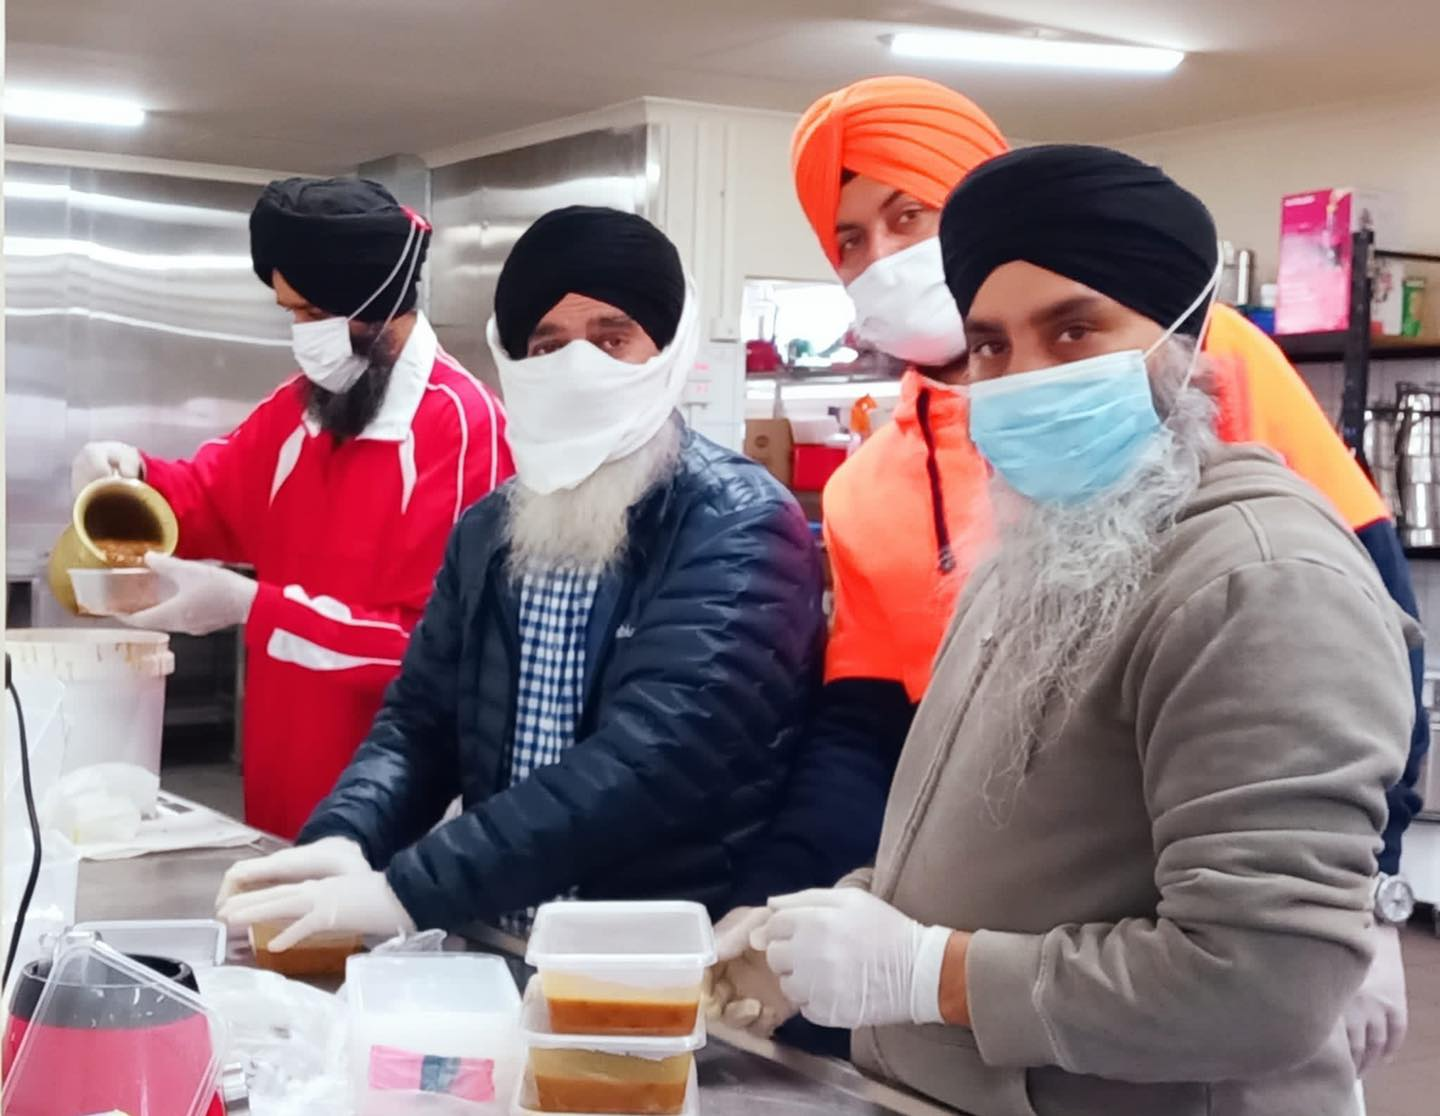 Sikh volunteers packaging food containers for distribution.